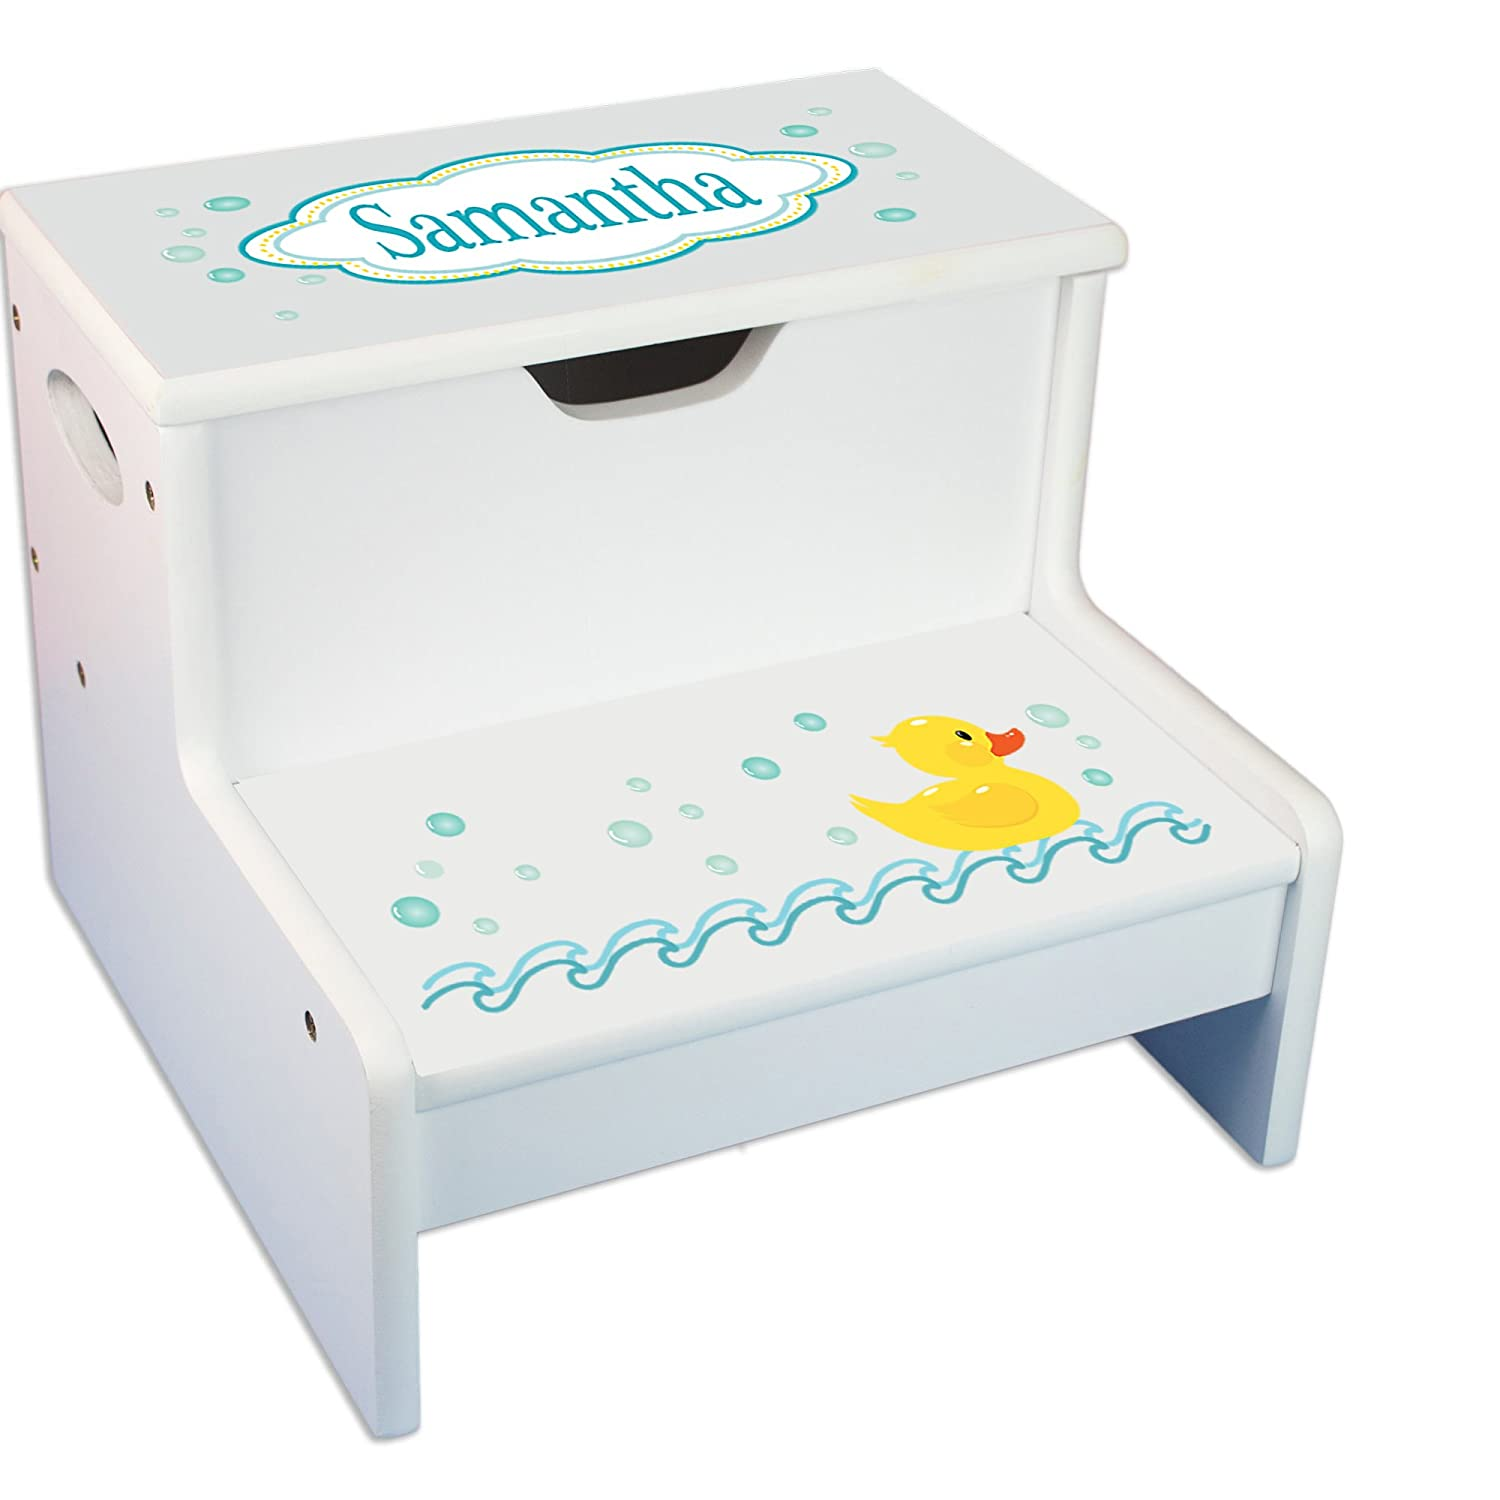 Personalized Rubber Ducky White Childrens Step Stool with Storage MyBambino step-whi-228